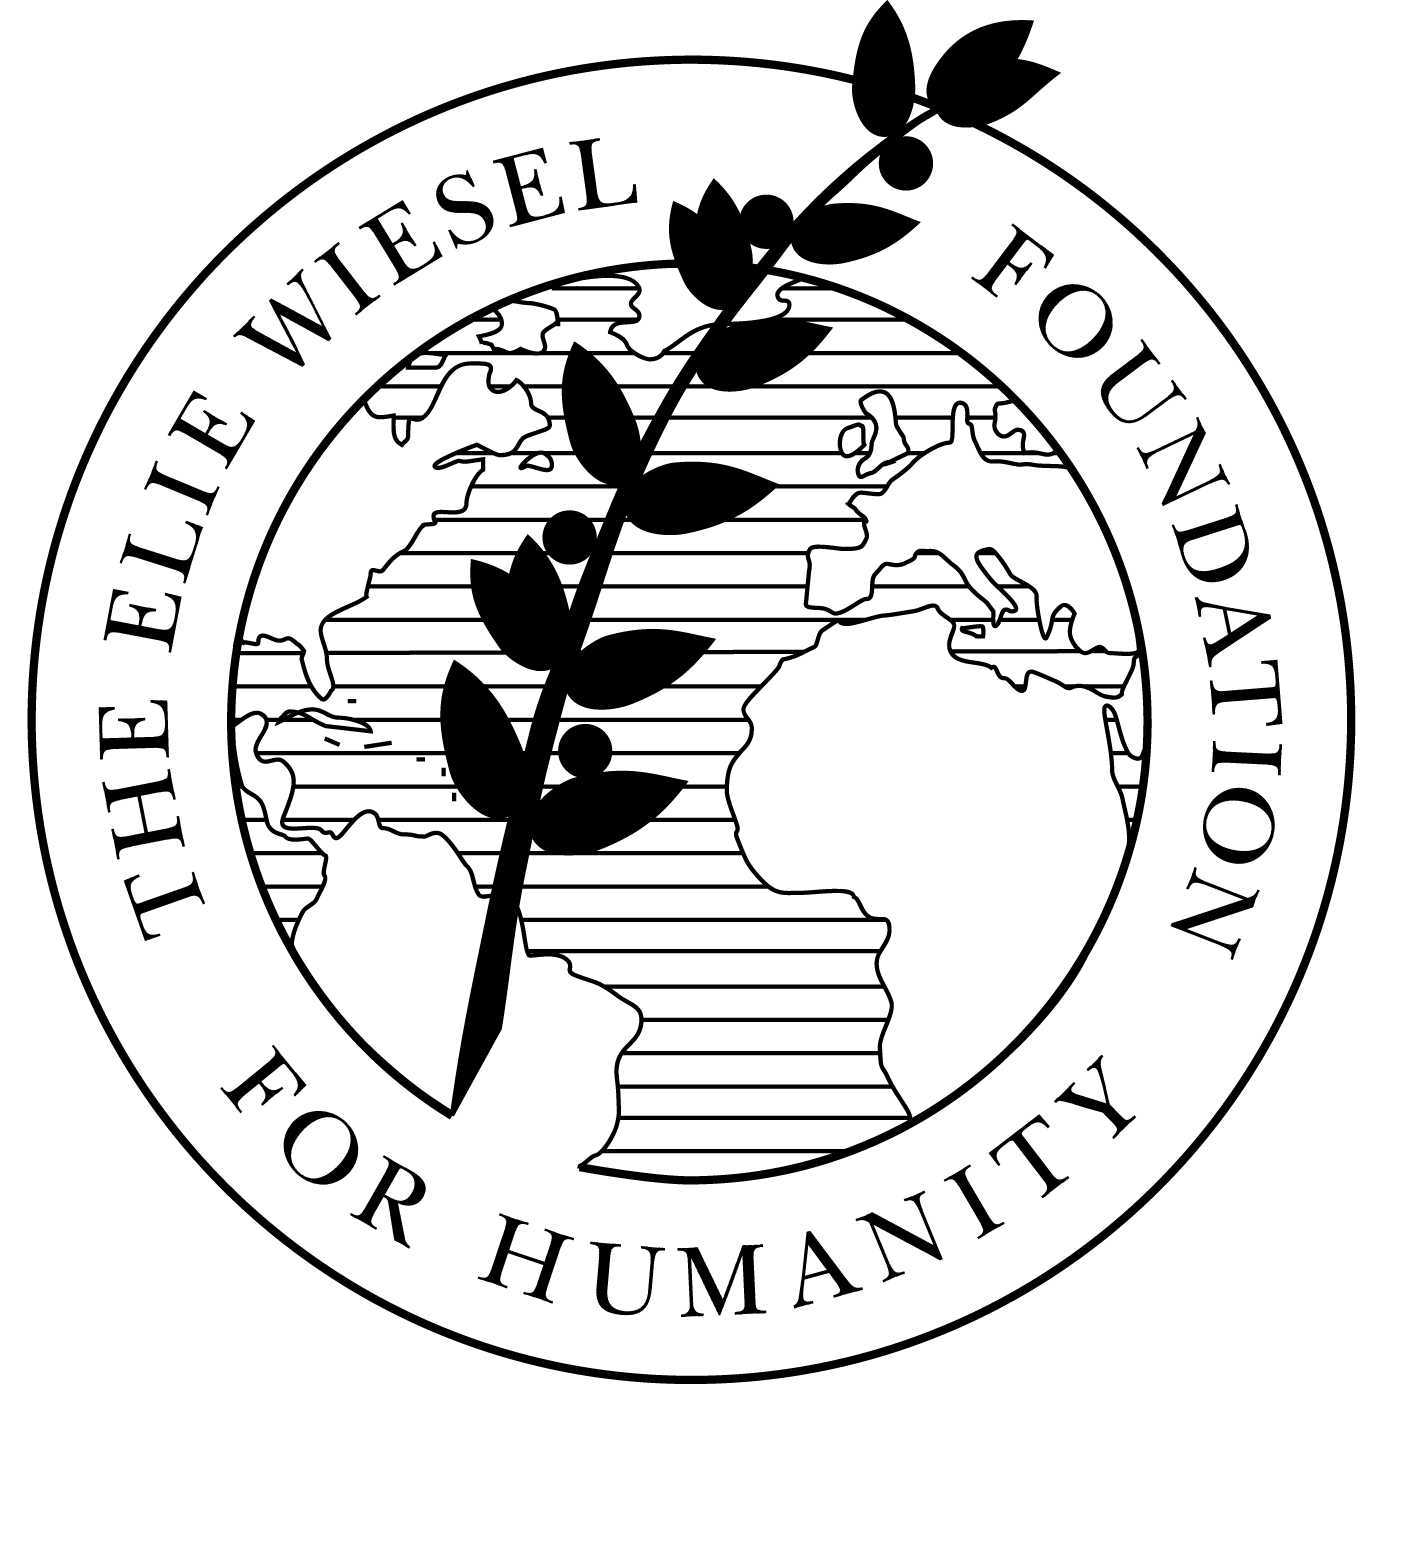 elie wiesel foundation for humanity essay contest the columns the elie wiesel foundation for humanity is currently accepting submissions for the 2015 prize in ethics essay contest the deadline for submissions is